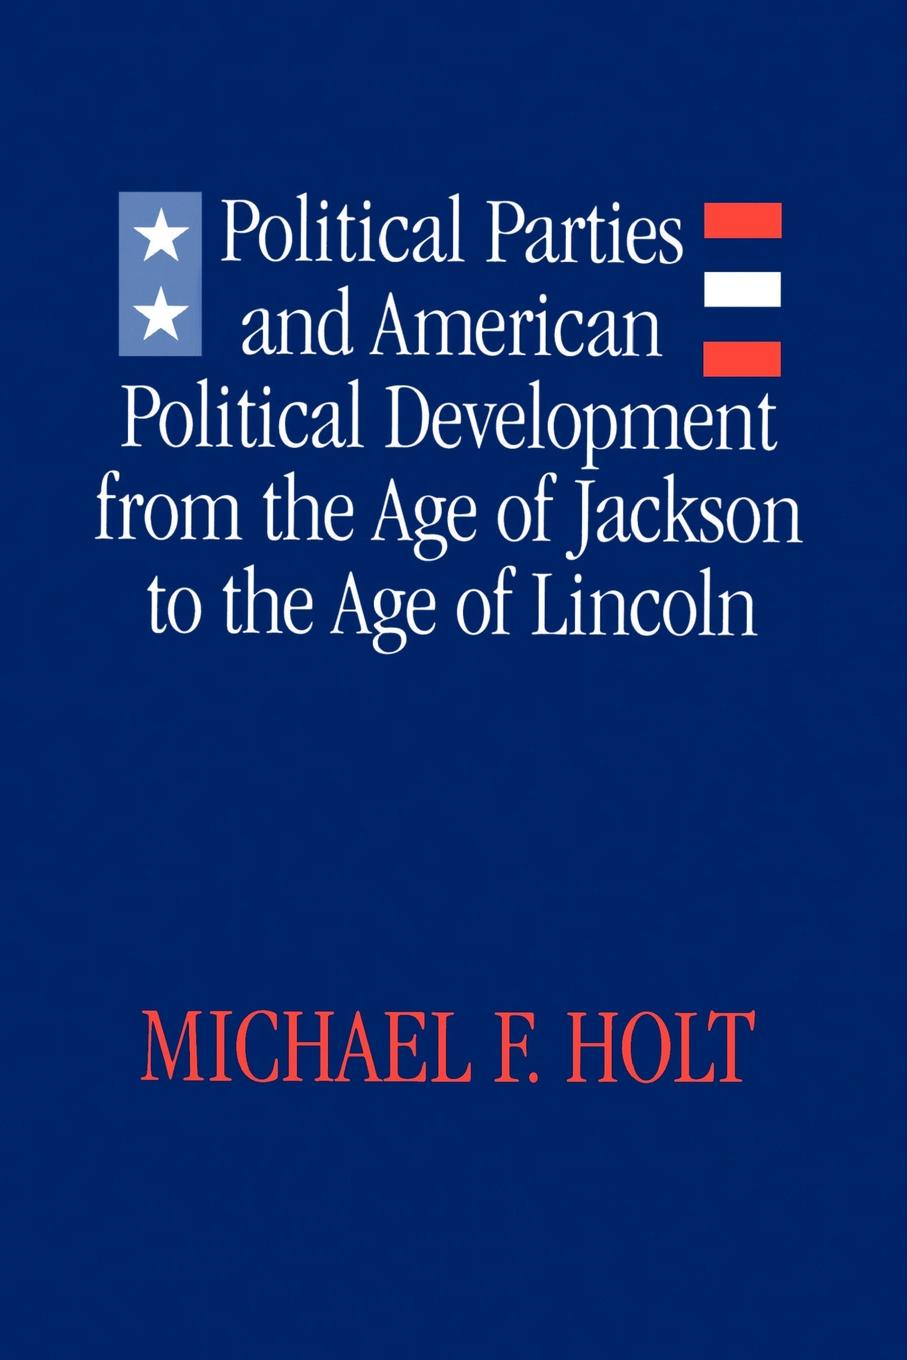 лучшая цена Michael F. Holt Political Parties and American Political Development. From the Age of Jackson to the Age of Lincoln